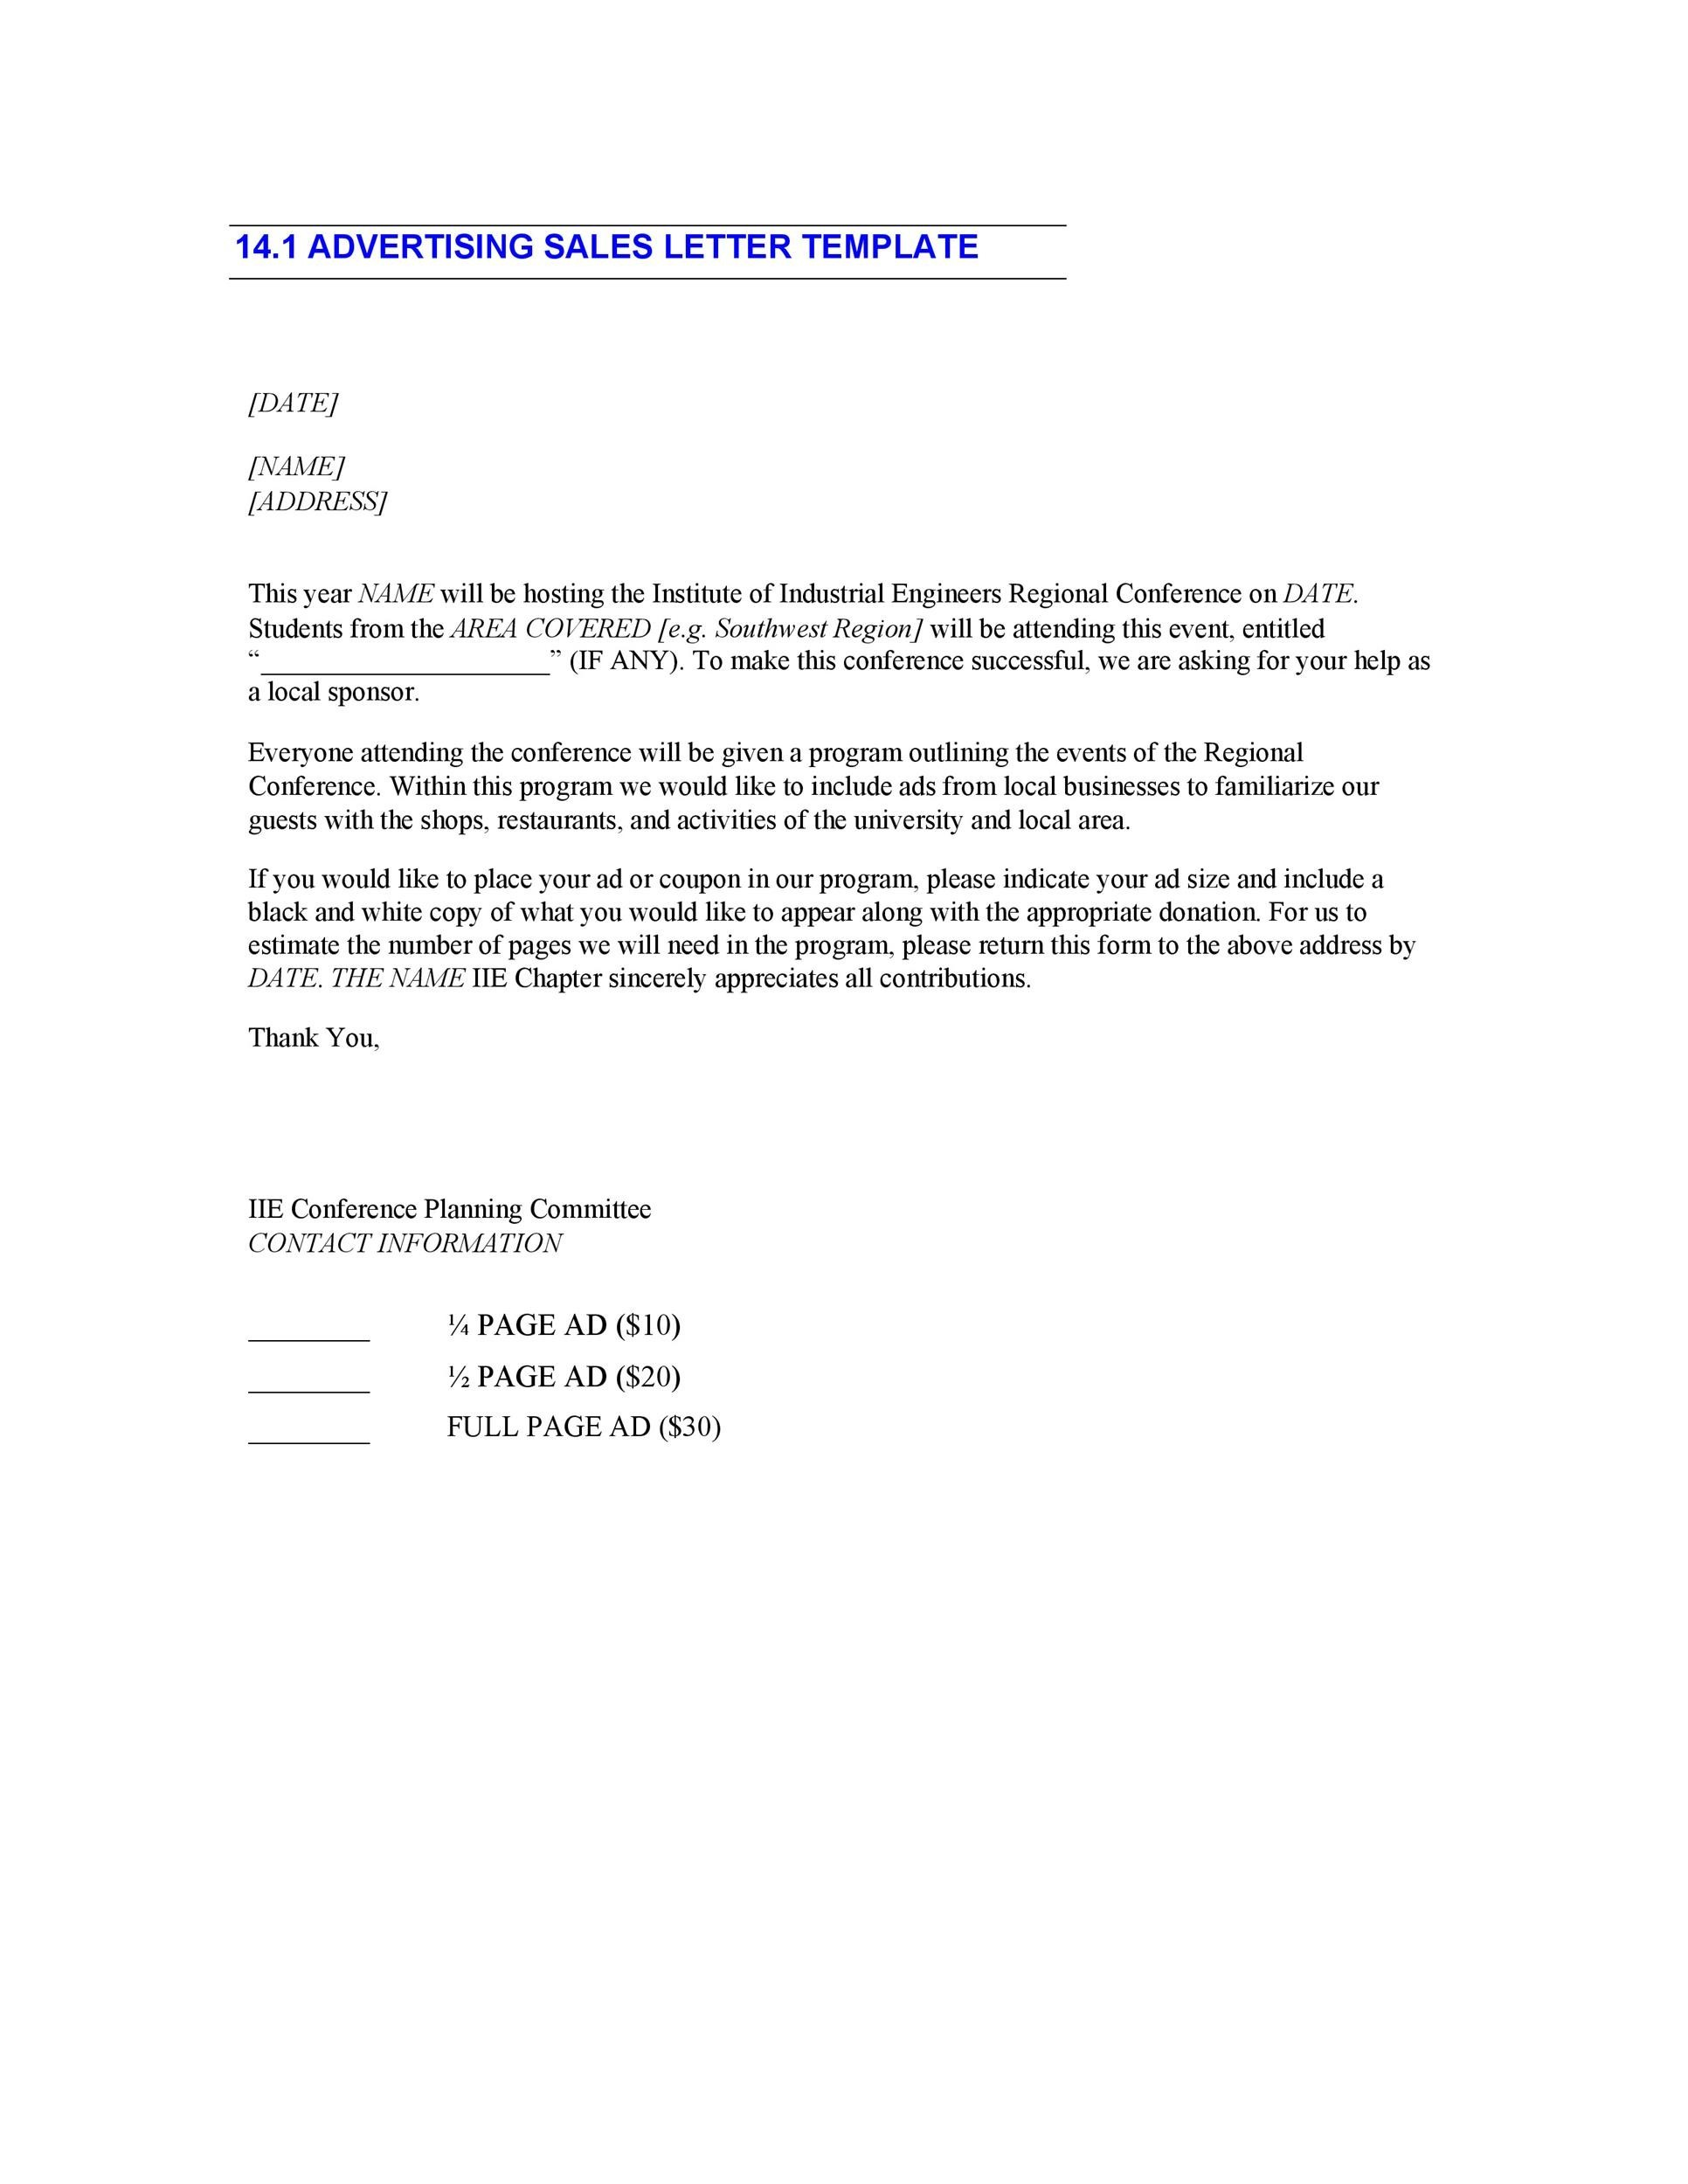 Free sales letter template 40